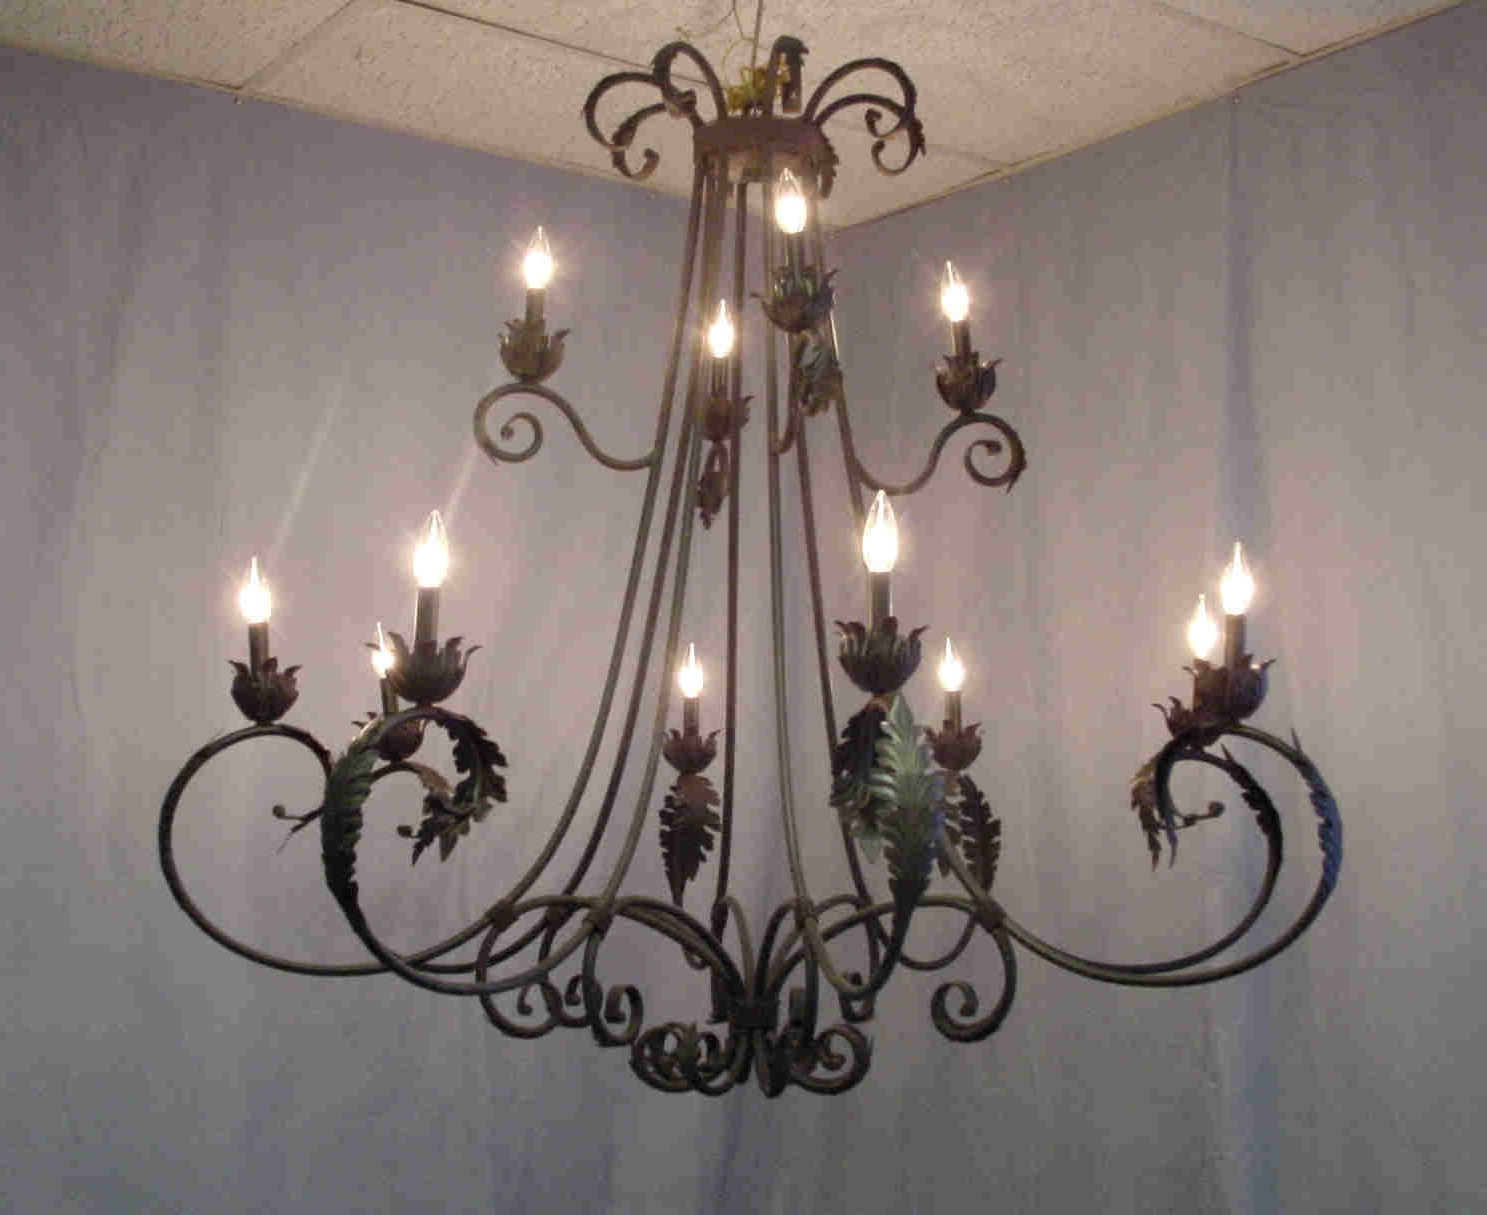 Current Outdoor Iron Hanging Lights Intended For Wrought Iron & Antler Chandeliers & Lighting Rustic, Tuscan, Antique (View 3 of 20)